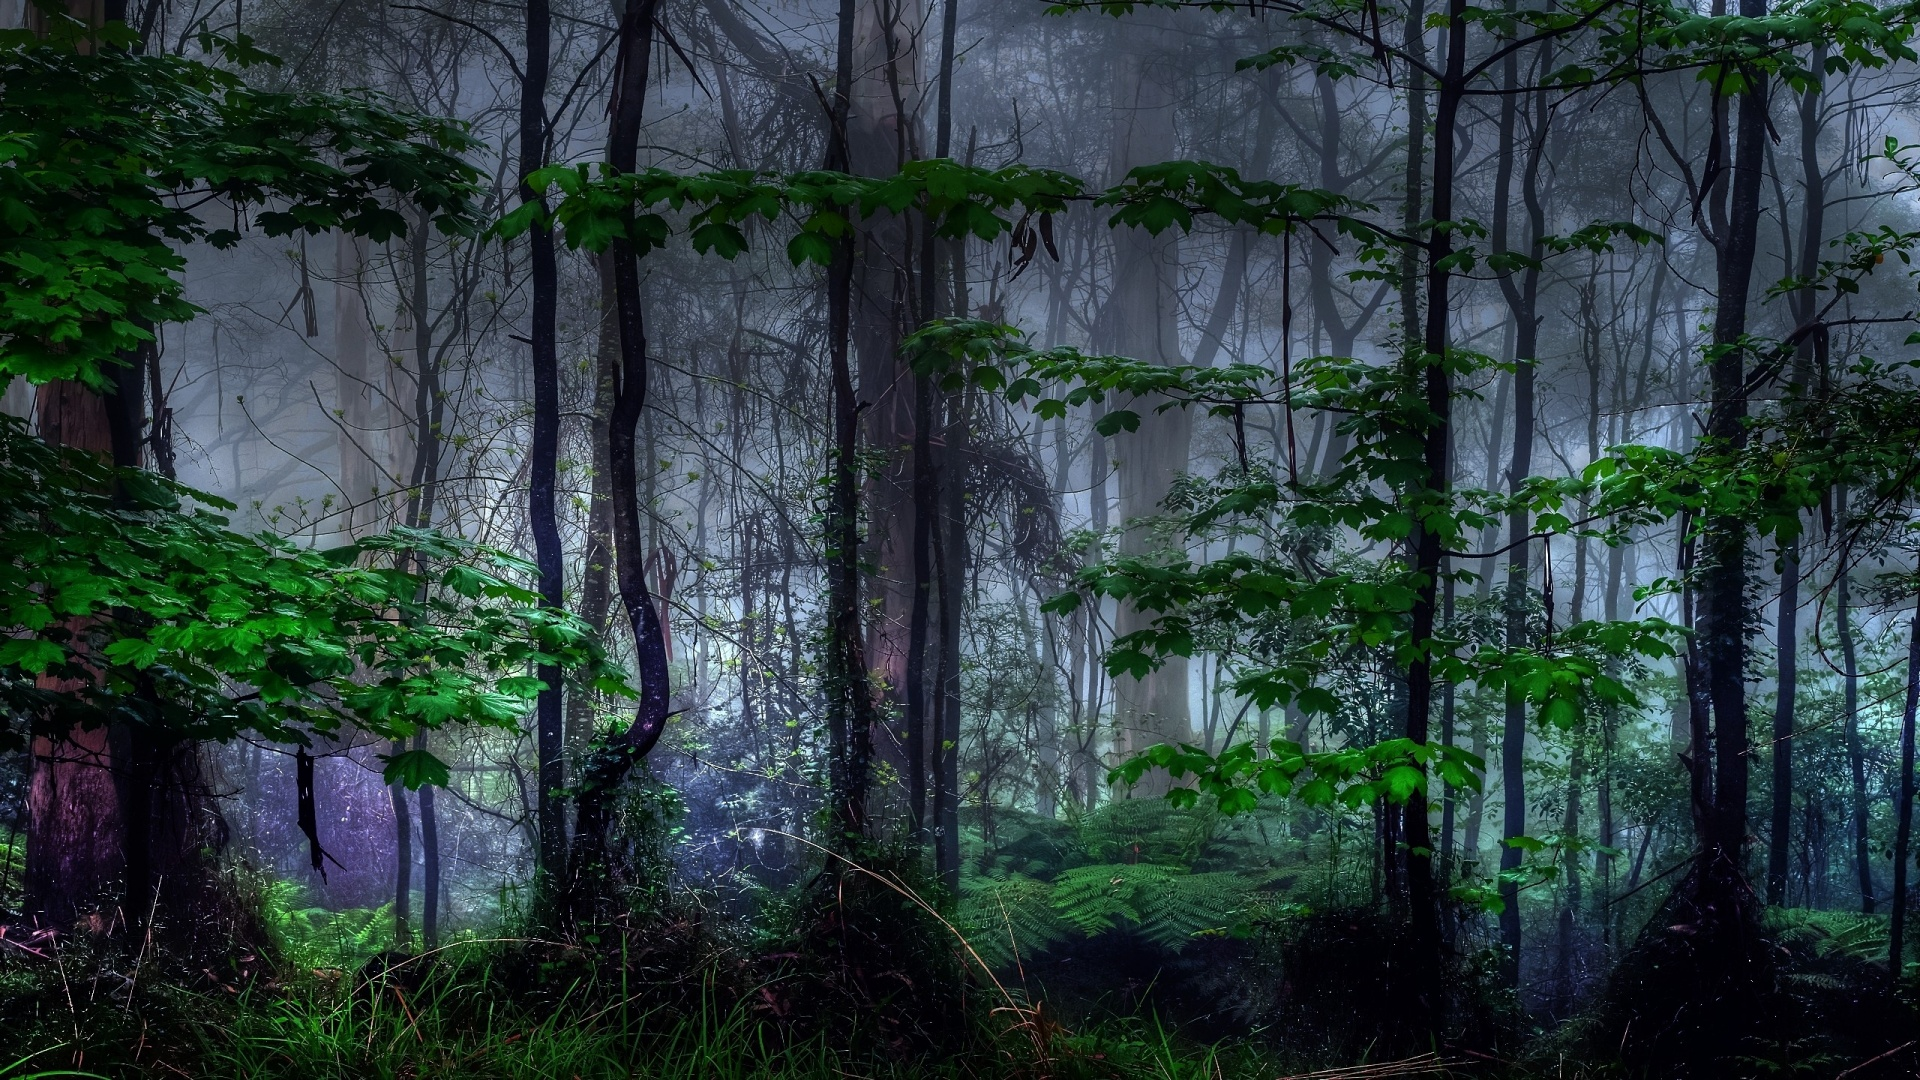 Dark Trees Hd Wallpapers: Nature Trees Dark Forest Mist